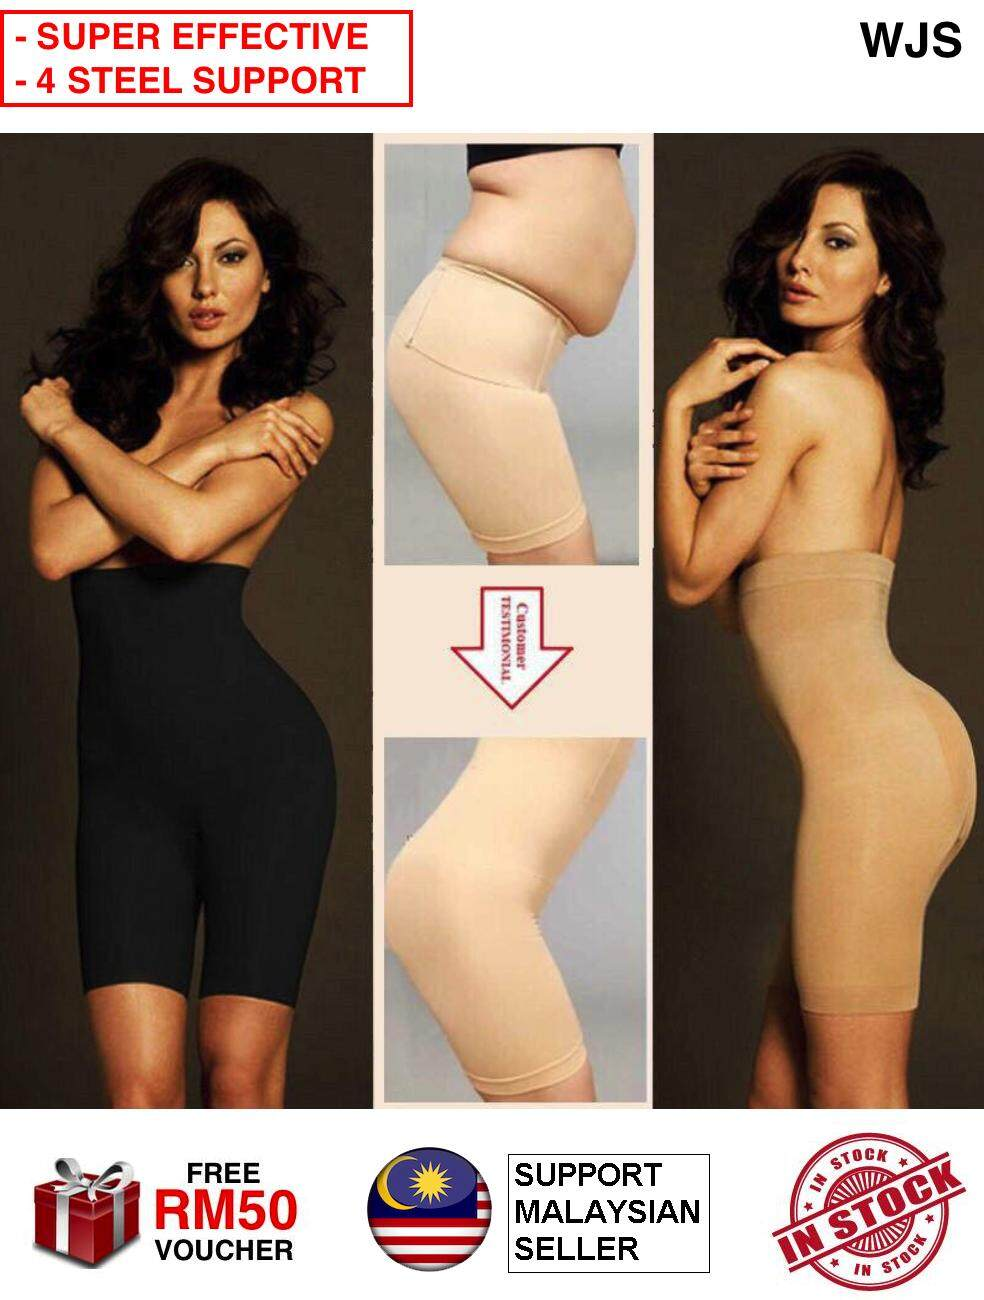 (SUPER EFFECTIVE + 4 STEEL SUPPORT) WJS PLUS SIZE High Waist Super Slim Body Shaping Corset Waist Trainer Tummy Control Slimming Shape Girdle Bengkung Panty / Panties Korset / Corset Pants / Seluar Dalam Pengempis Perut UP TO 4XL [FREE RM 50 VOUCHER]